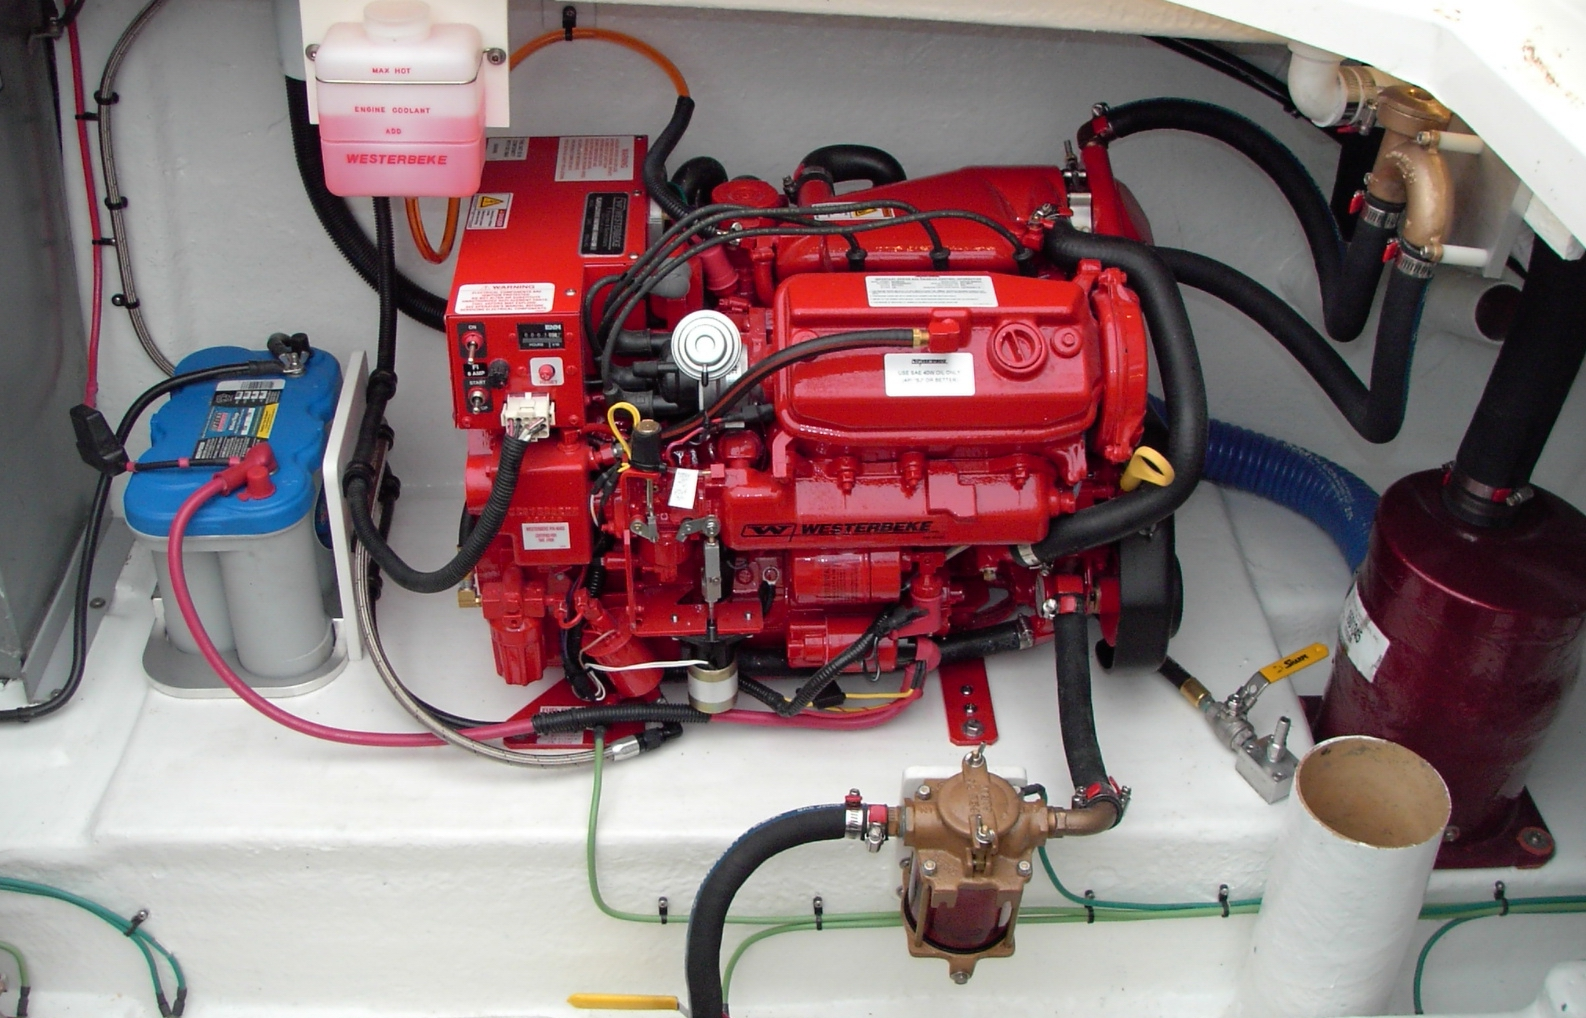 PDR_1938 sea ray 340 sundancer restoration april 2011 westerbeke generator wiring diagram at alyssarenee.co